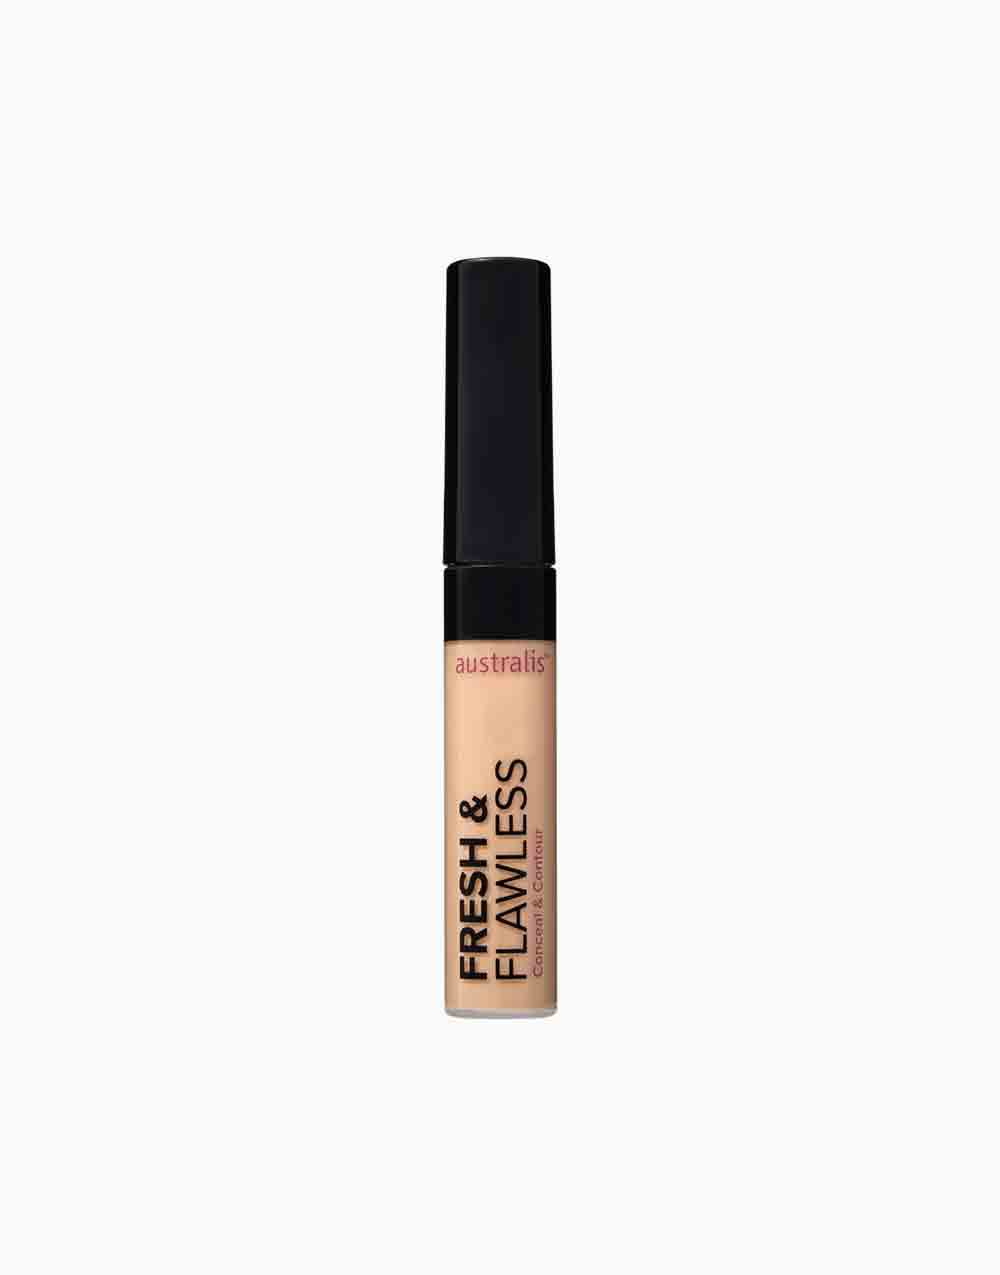 Fresh & Flawless Conceal & Contour Concealer by Australis |